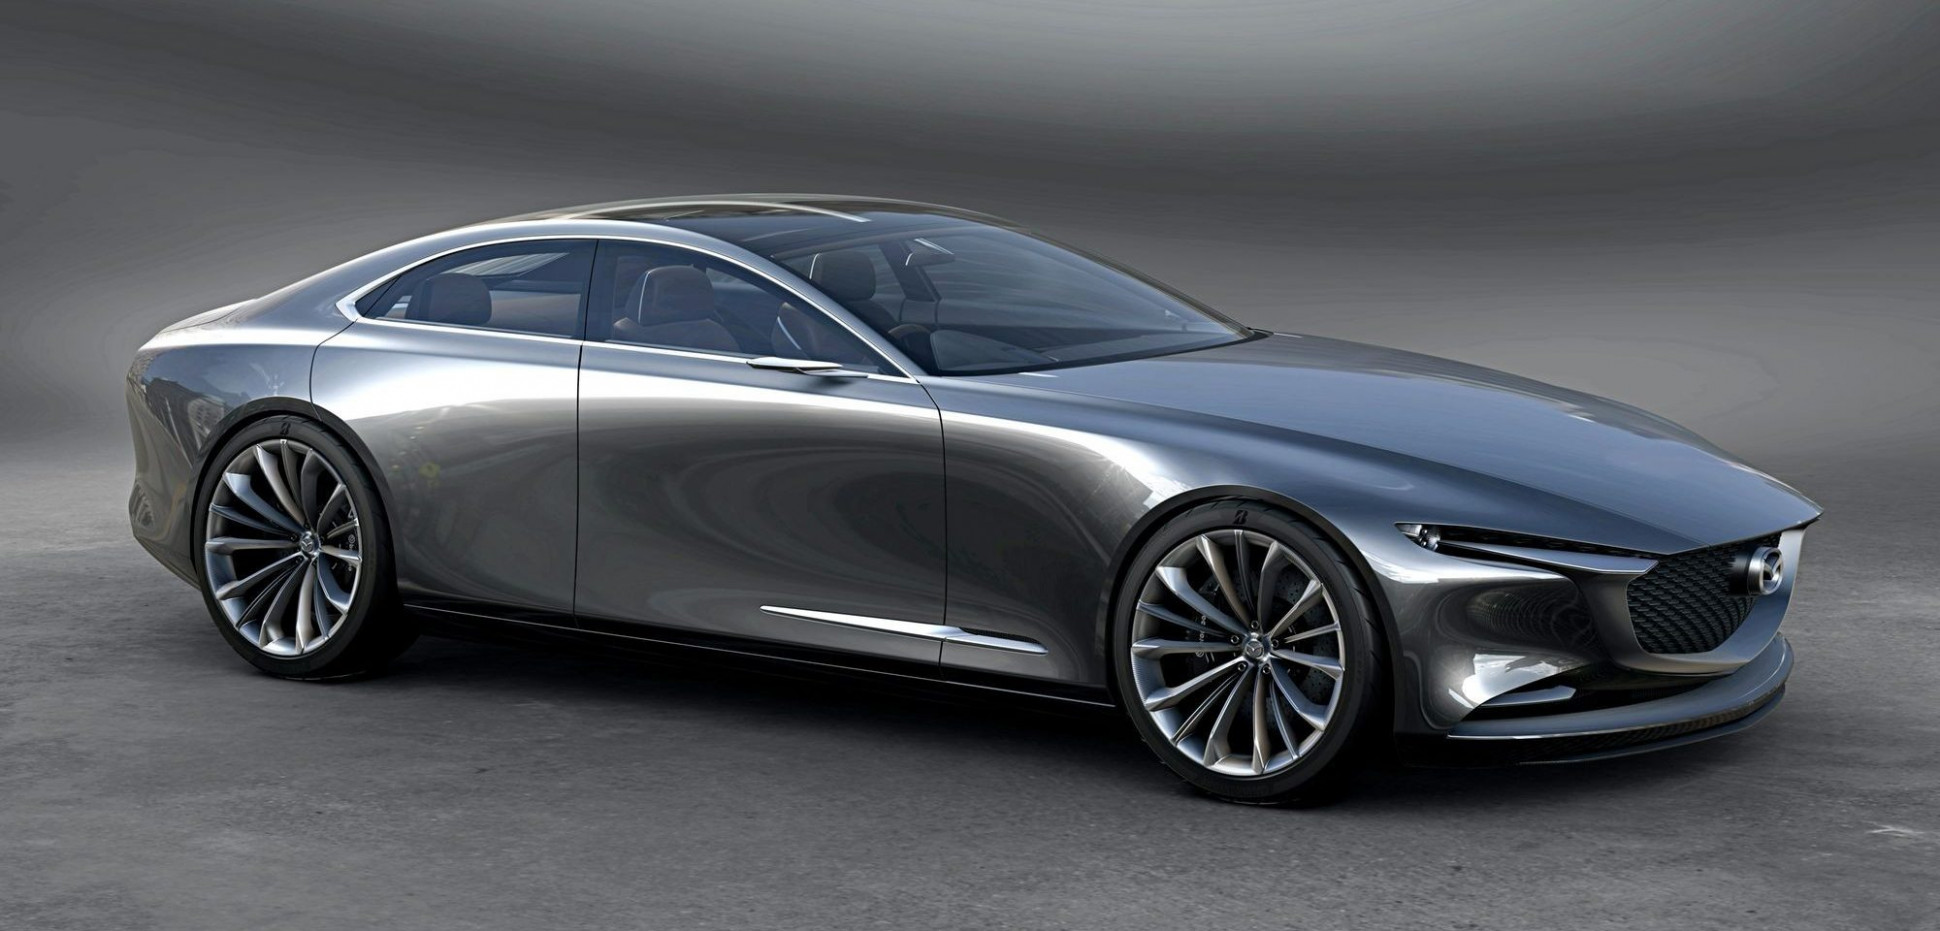 Redesign and Concept 2022 Mazda 3